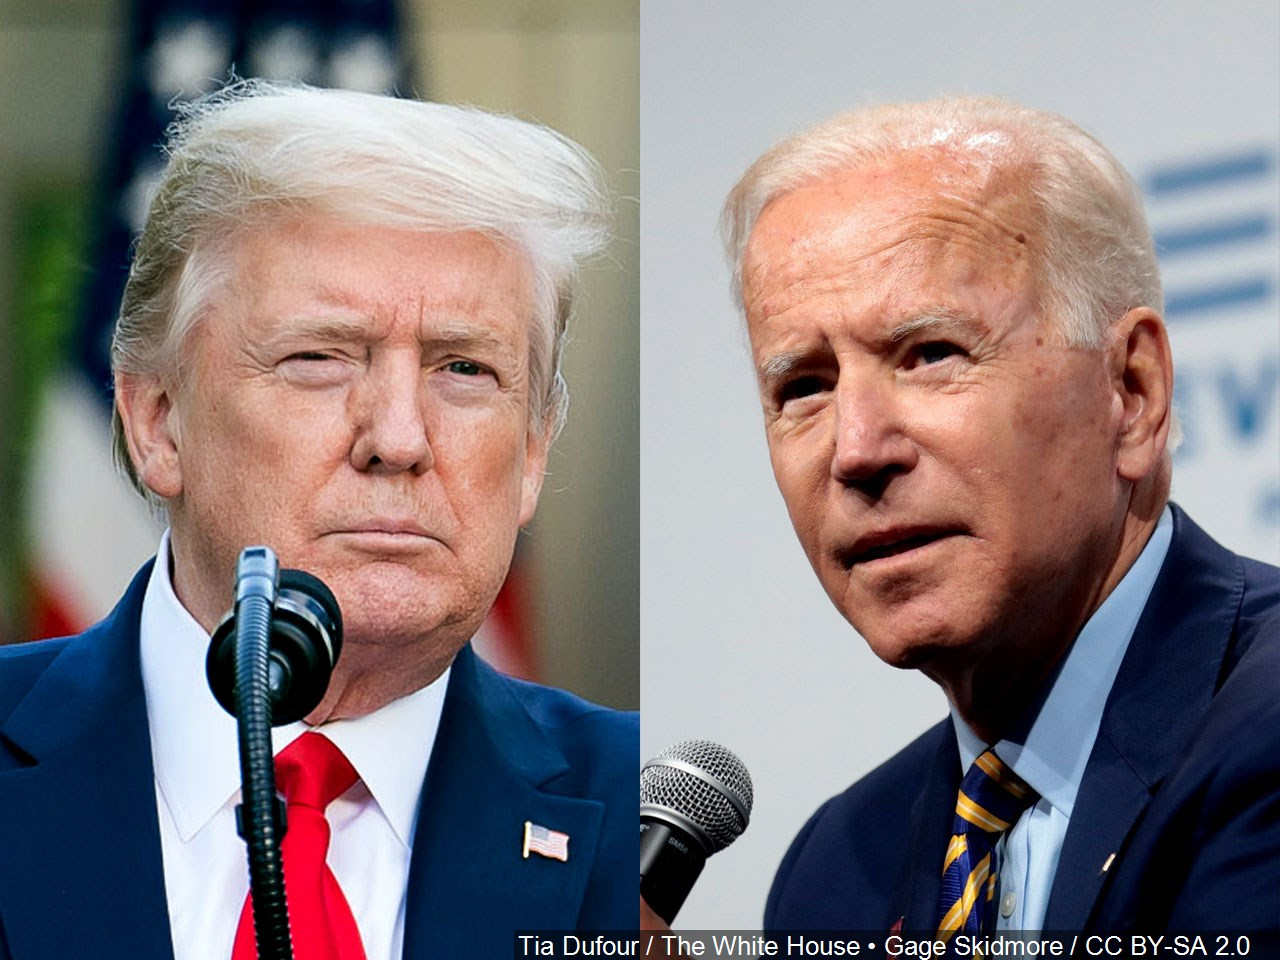 President Trump Says He Won't Attend Biden's Inauguration